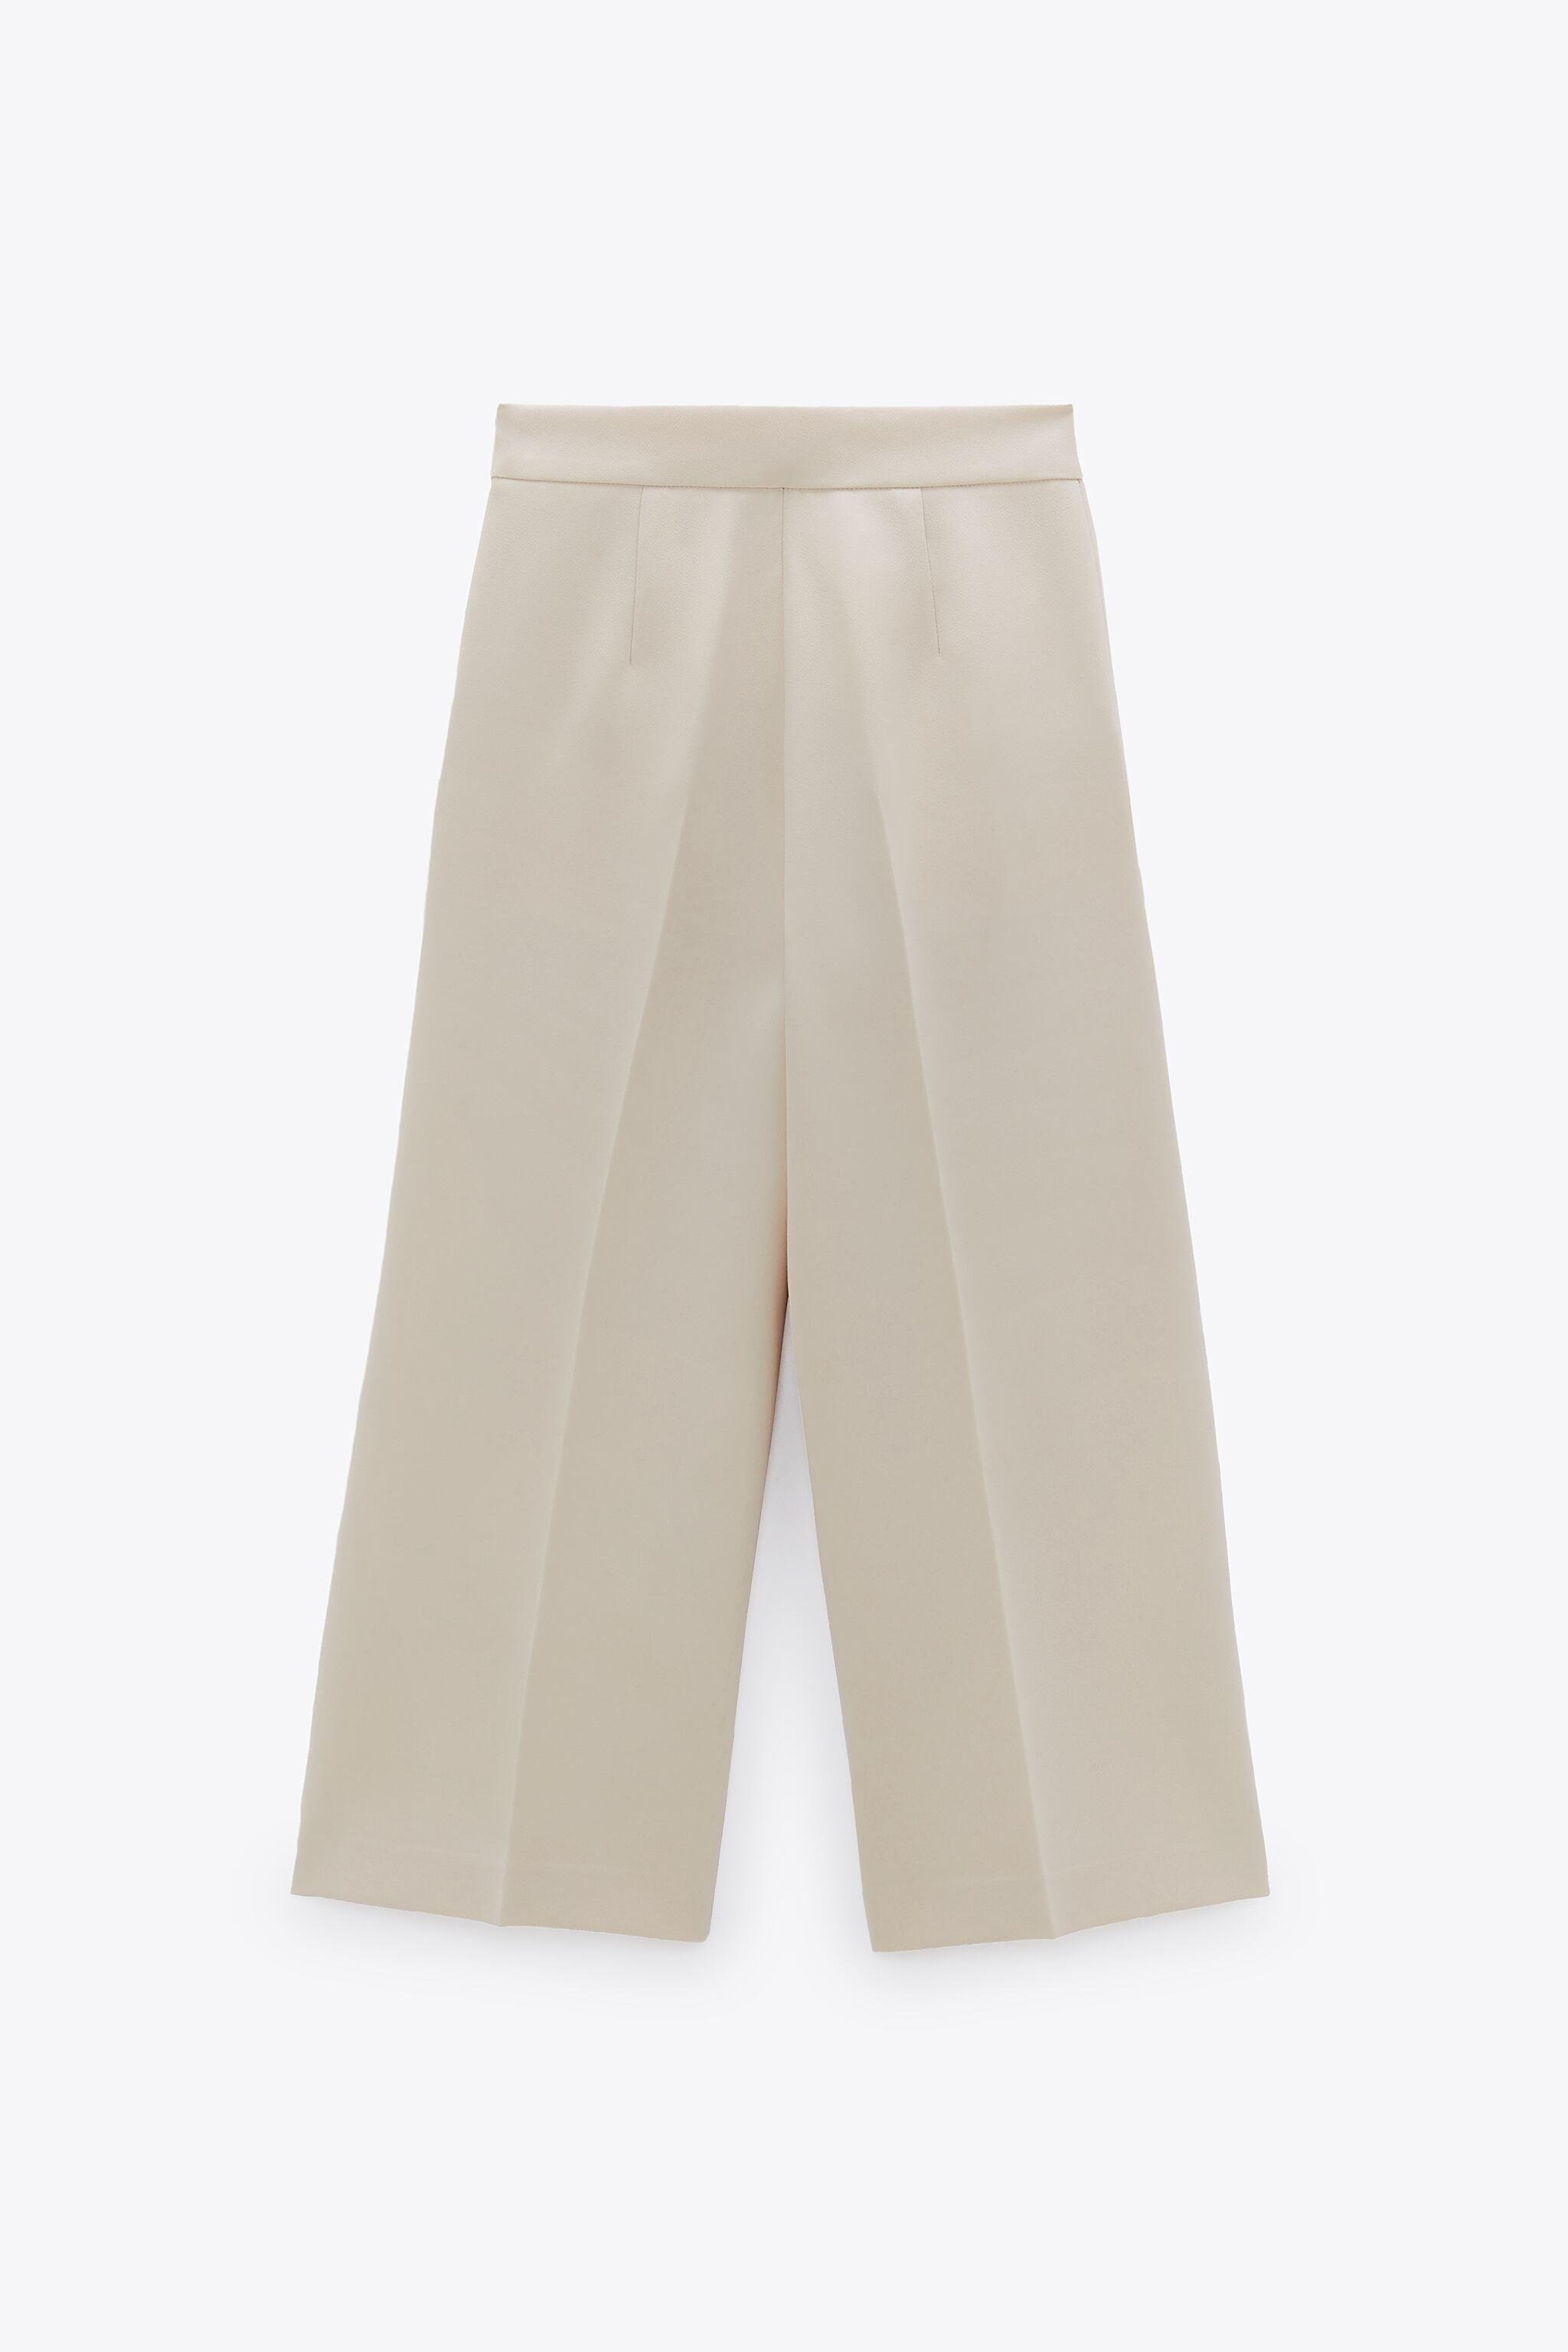 BUTTONED CULOTTES 6